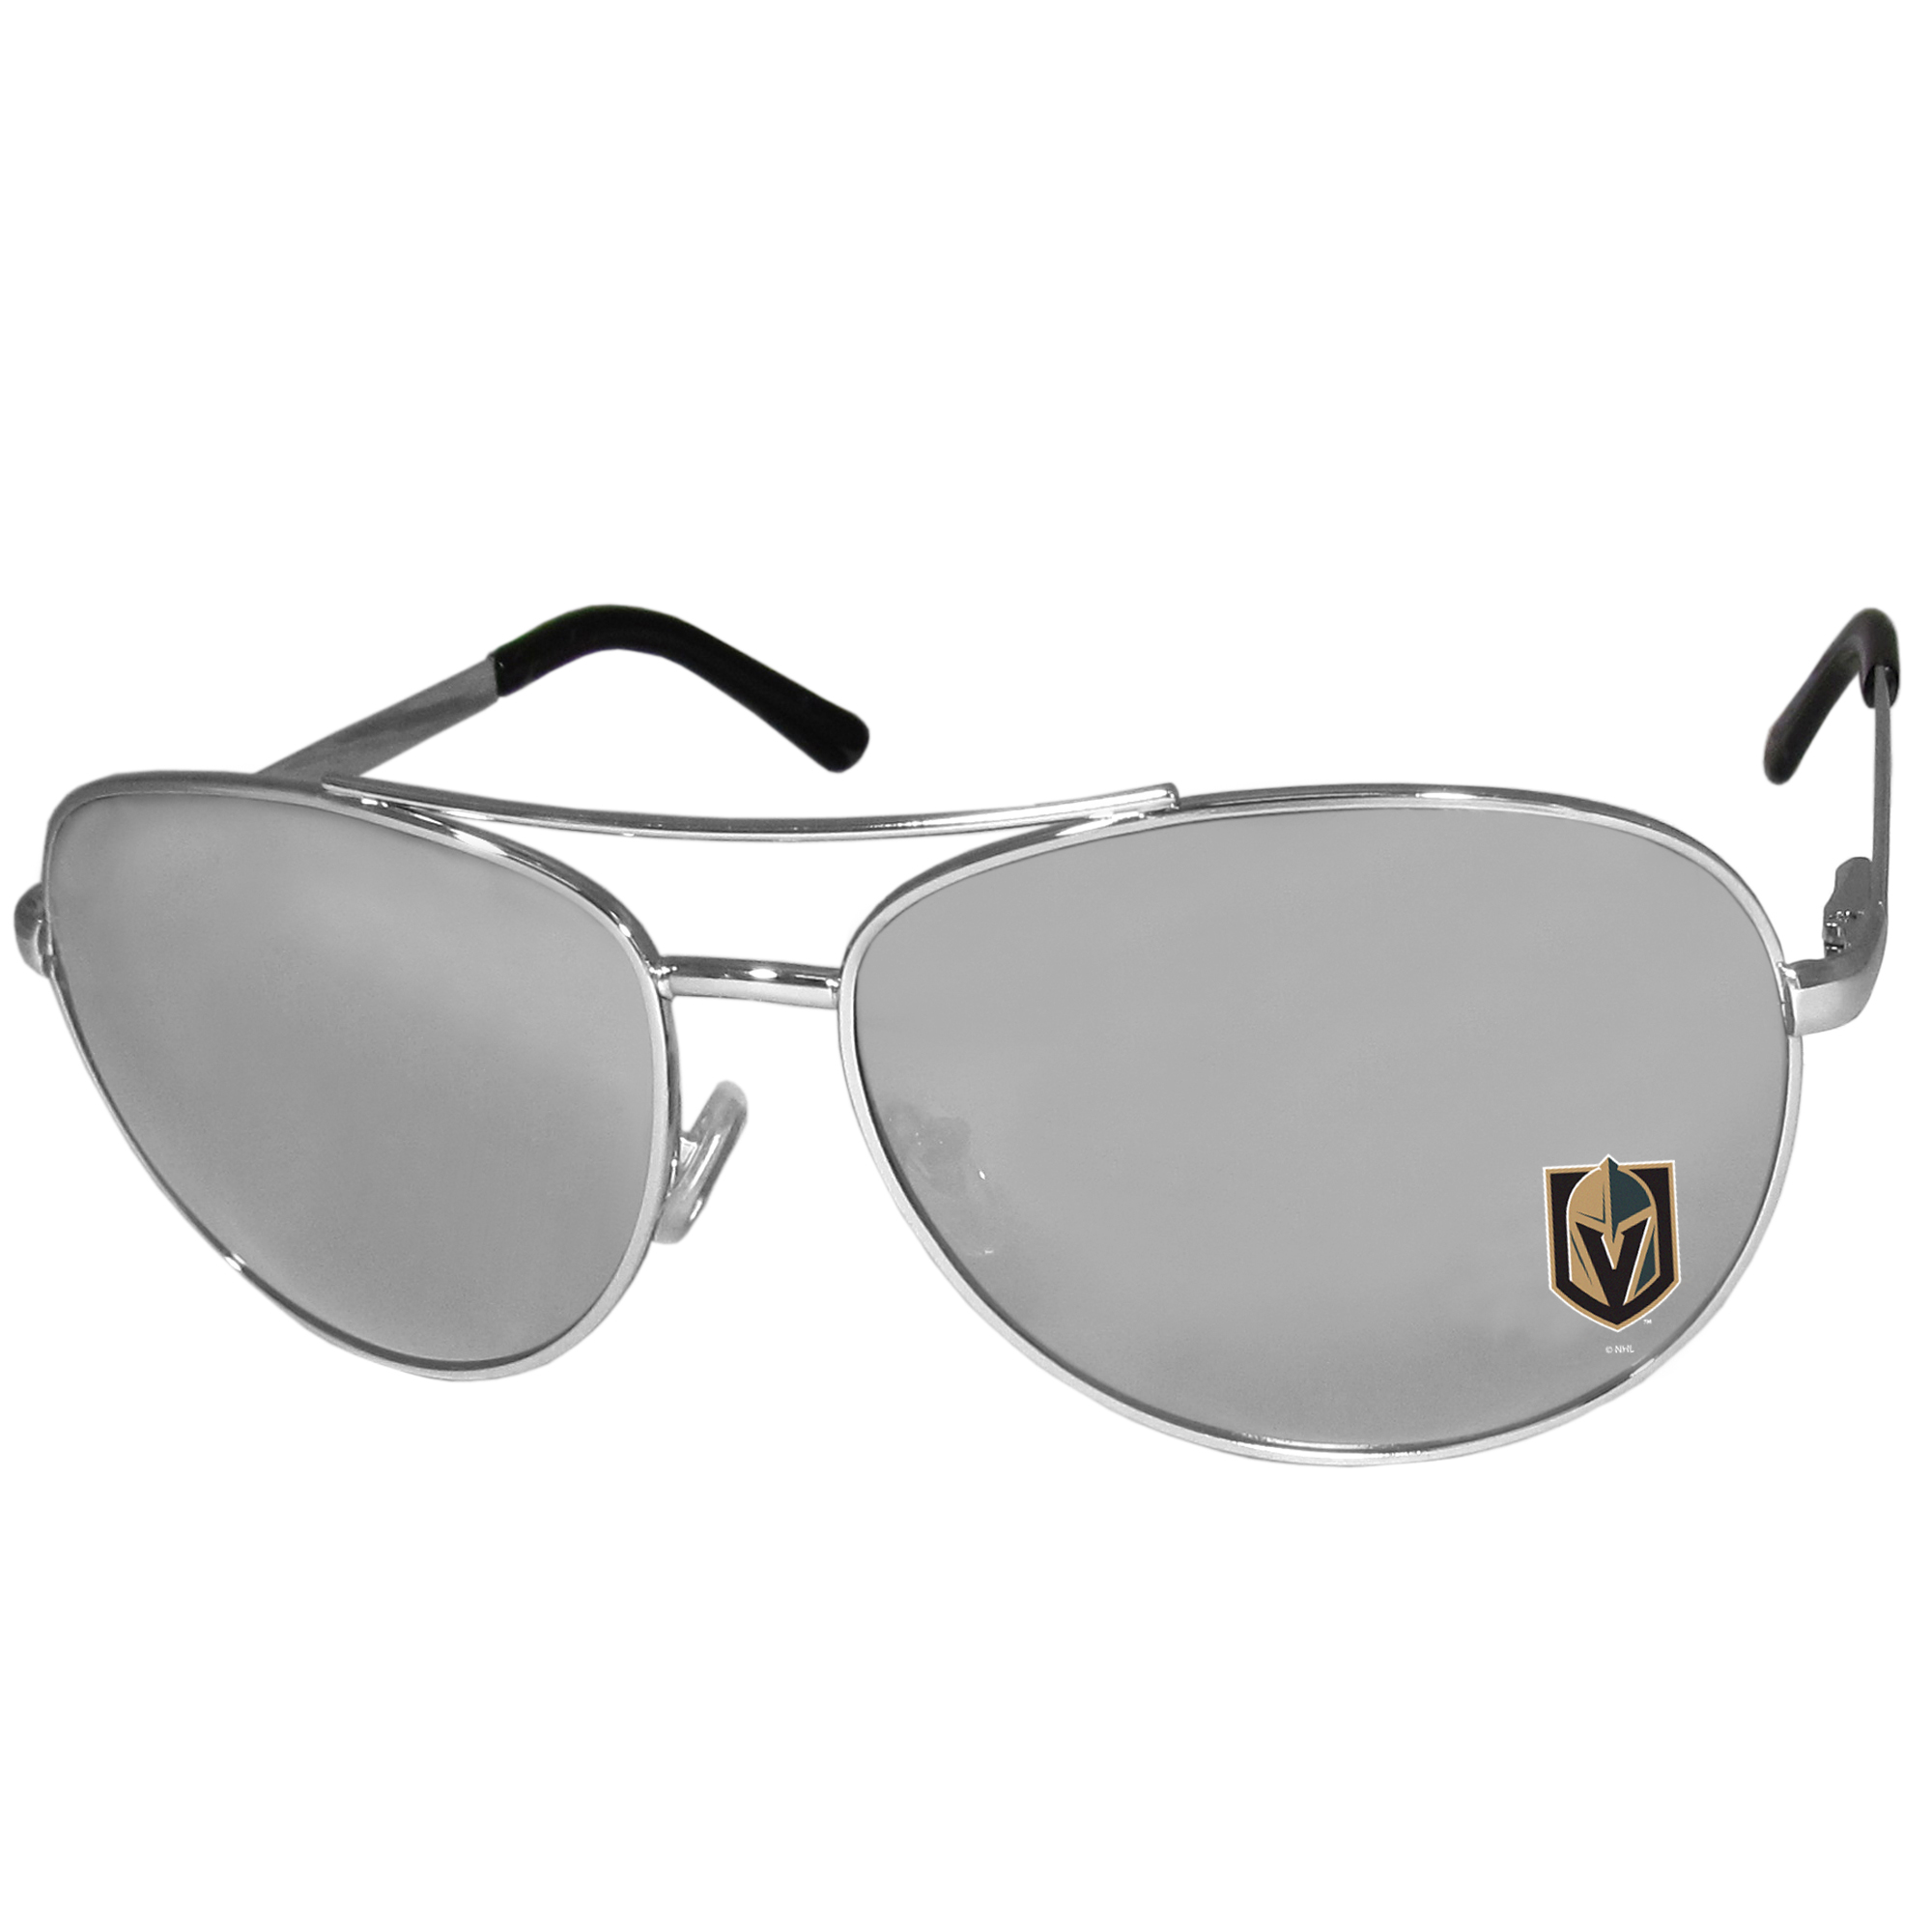 Vegas Golden Knights® Aviator Sunglasses - Our aviator sunglasses have the iconic aviator style with mirrored lenses and metal frames. The glasses feature a silk screened Vegas Golden Knights® logo in the corner of the lense. 100% UVA/UVB protection.